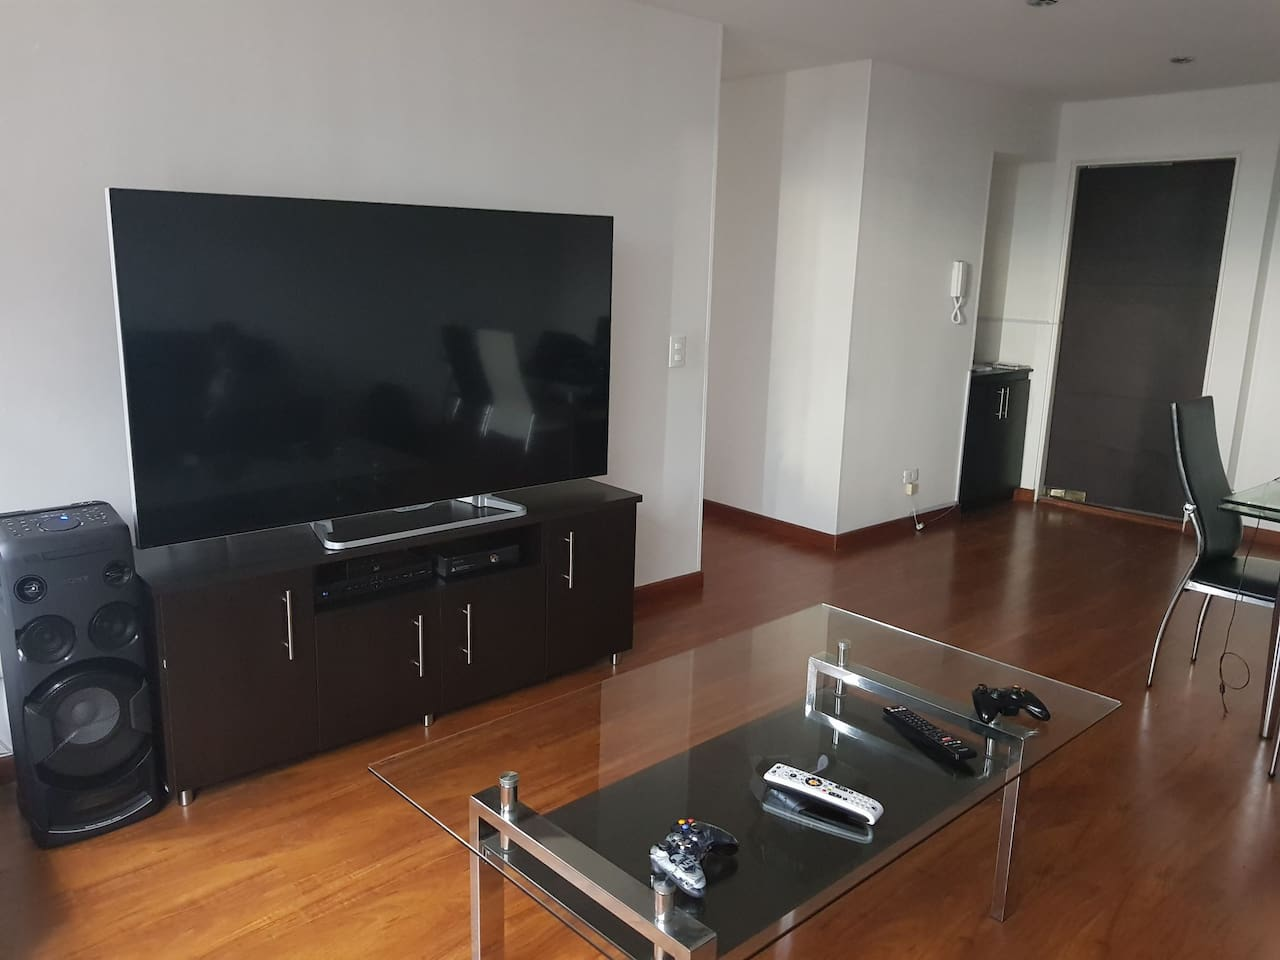 clean apartment in exclusive sector. you can enjoy internet tv music and even x box so you can feel like home.